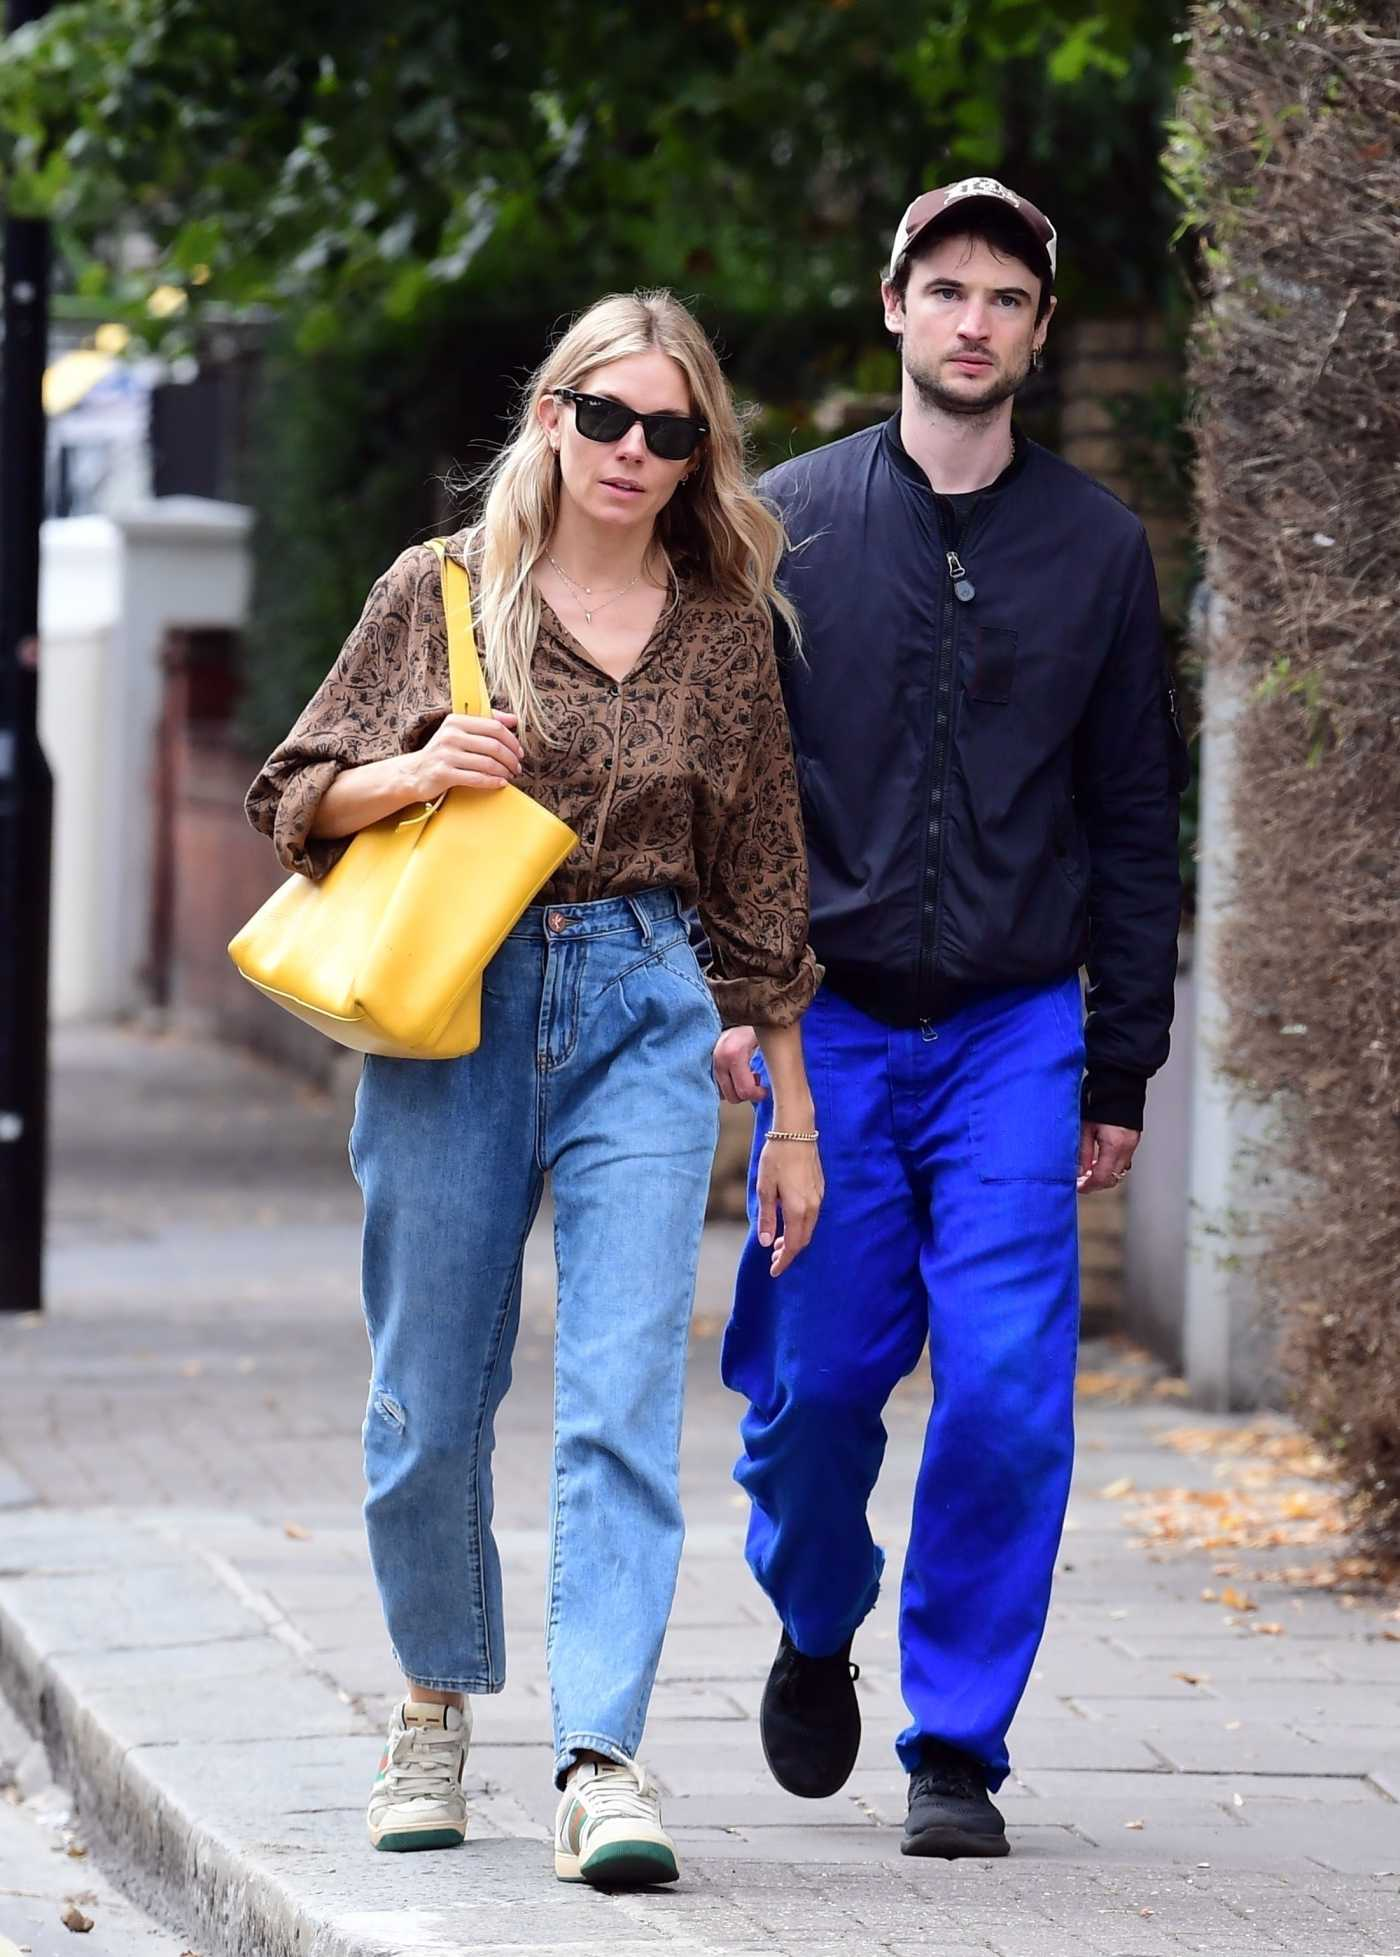 Sienna Miller in a Gucci Sneakers Was Spotted with Her ex Tom Sturridge in London 09/09/2020